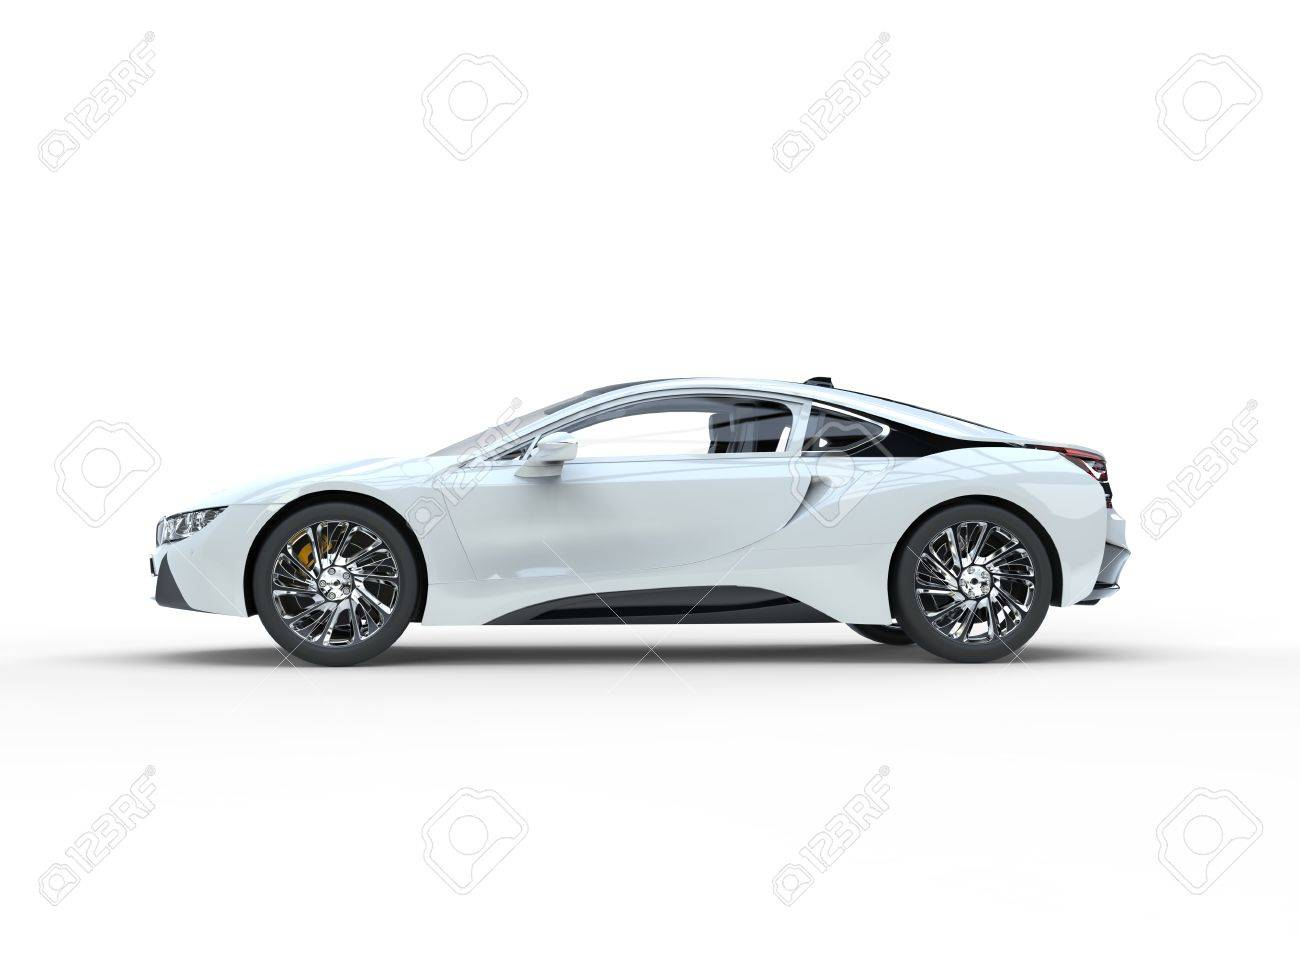 Awesome Modern White Sports Car   Side View   Isolated On White Background. Stock  Photo